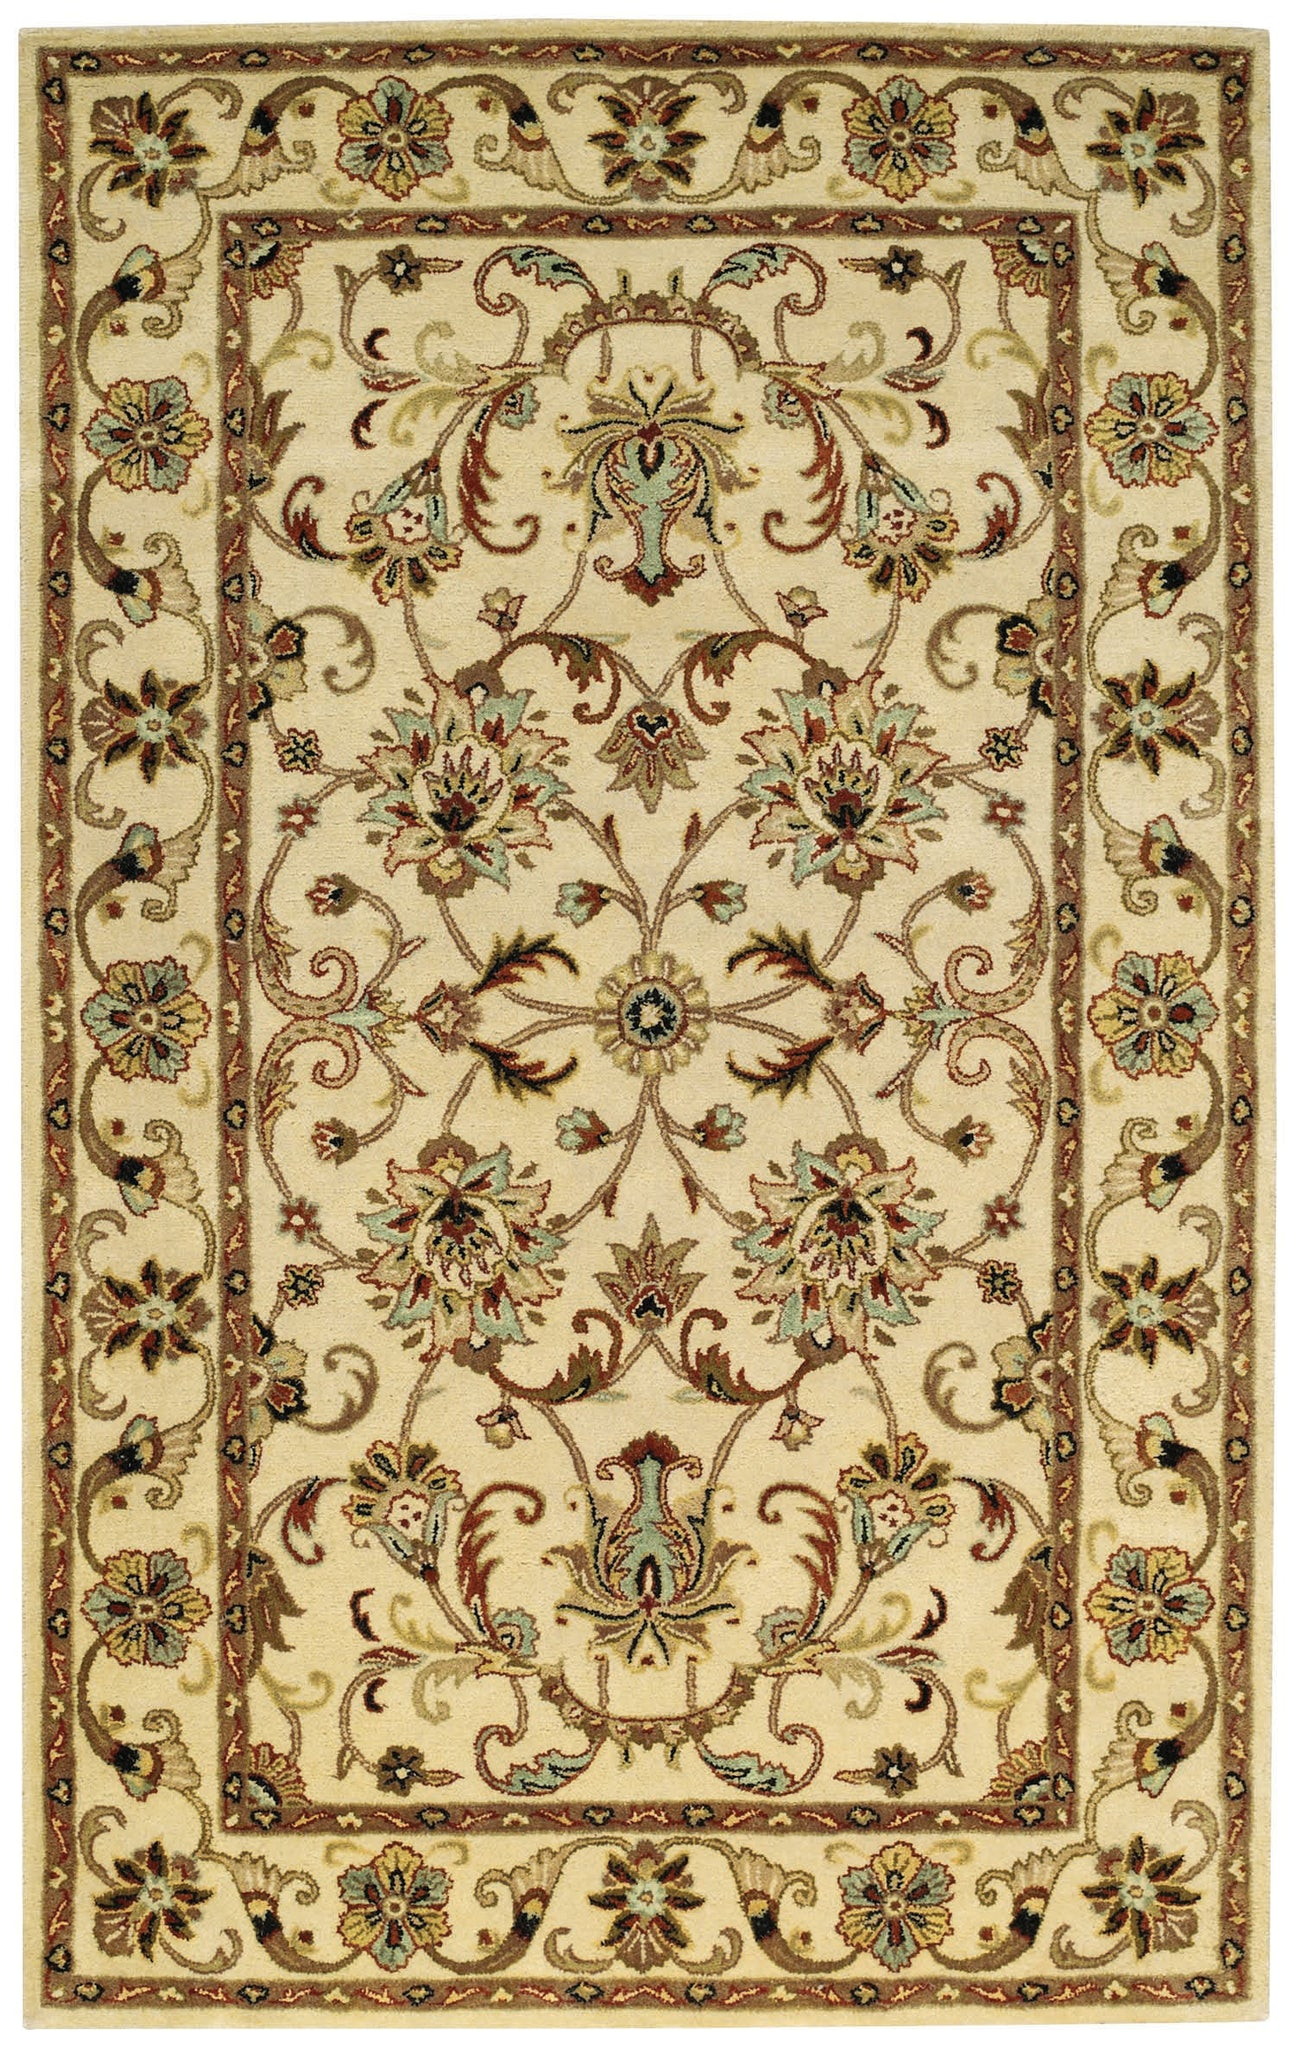 Capel Guilded 9205 Ivory 660 Area Rug main image